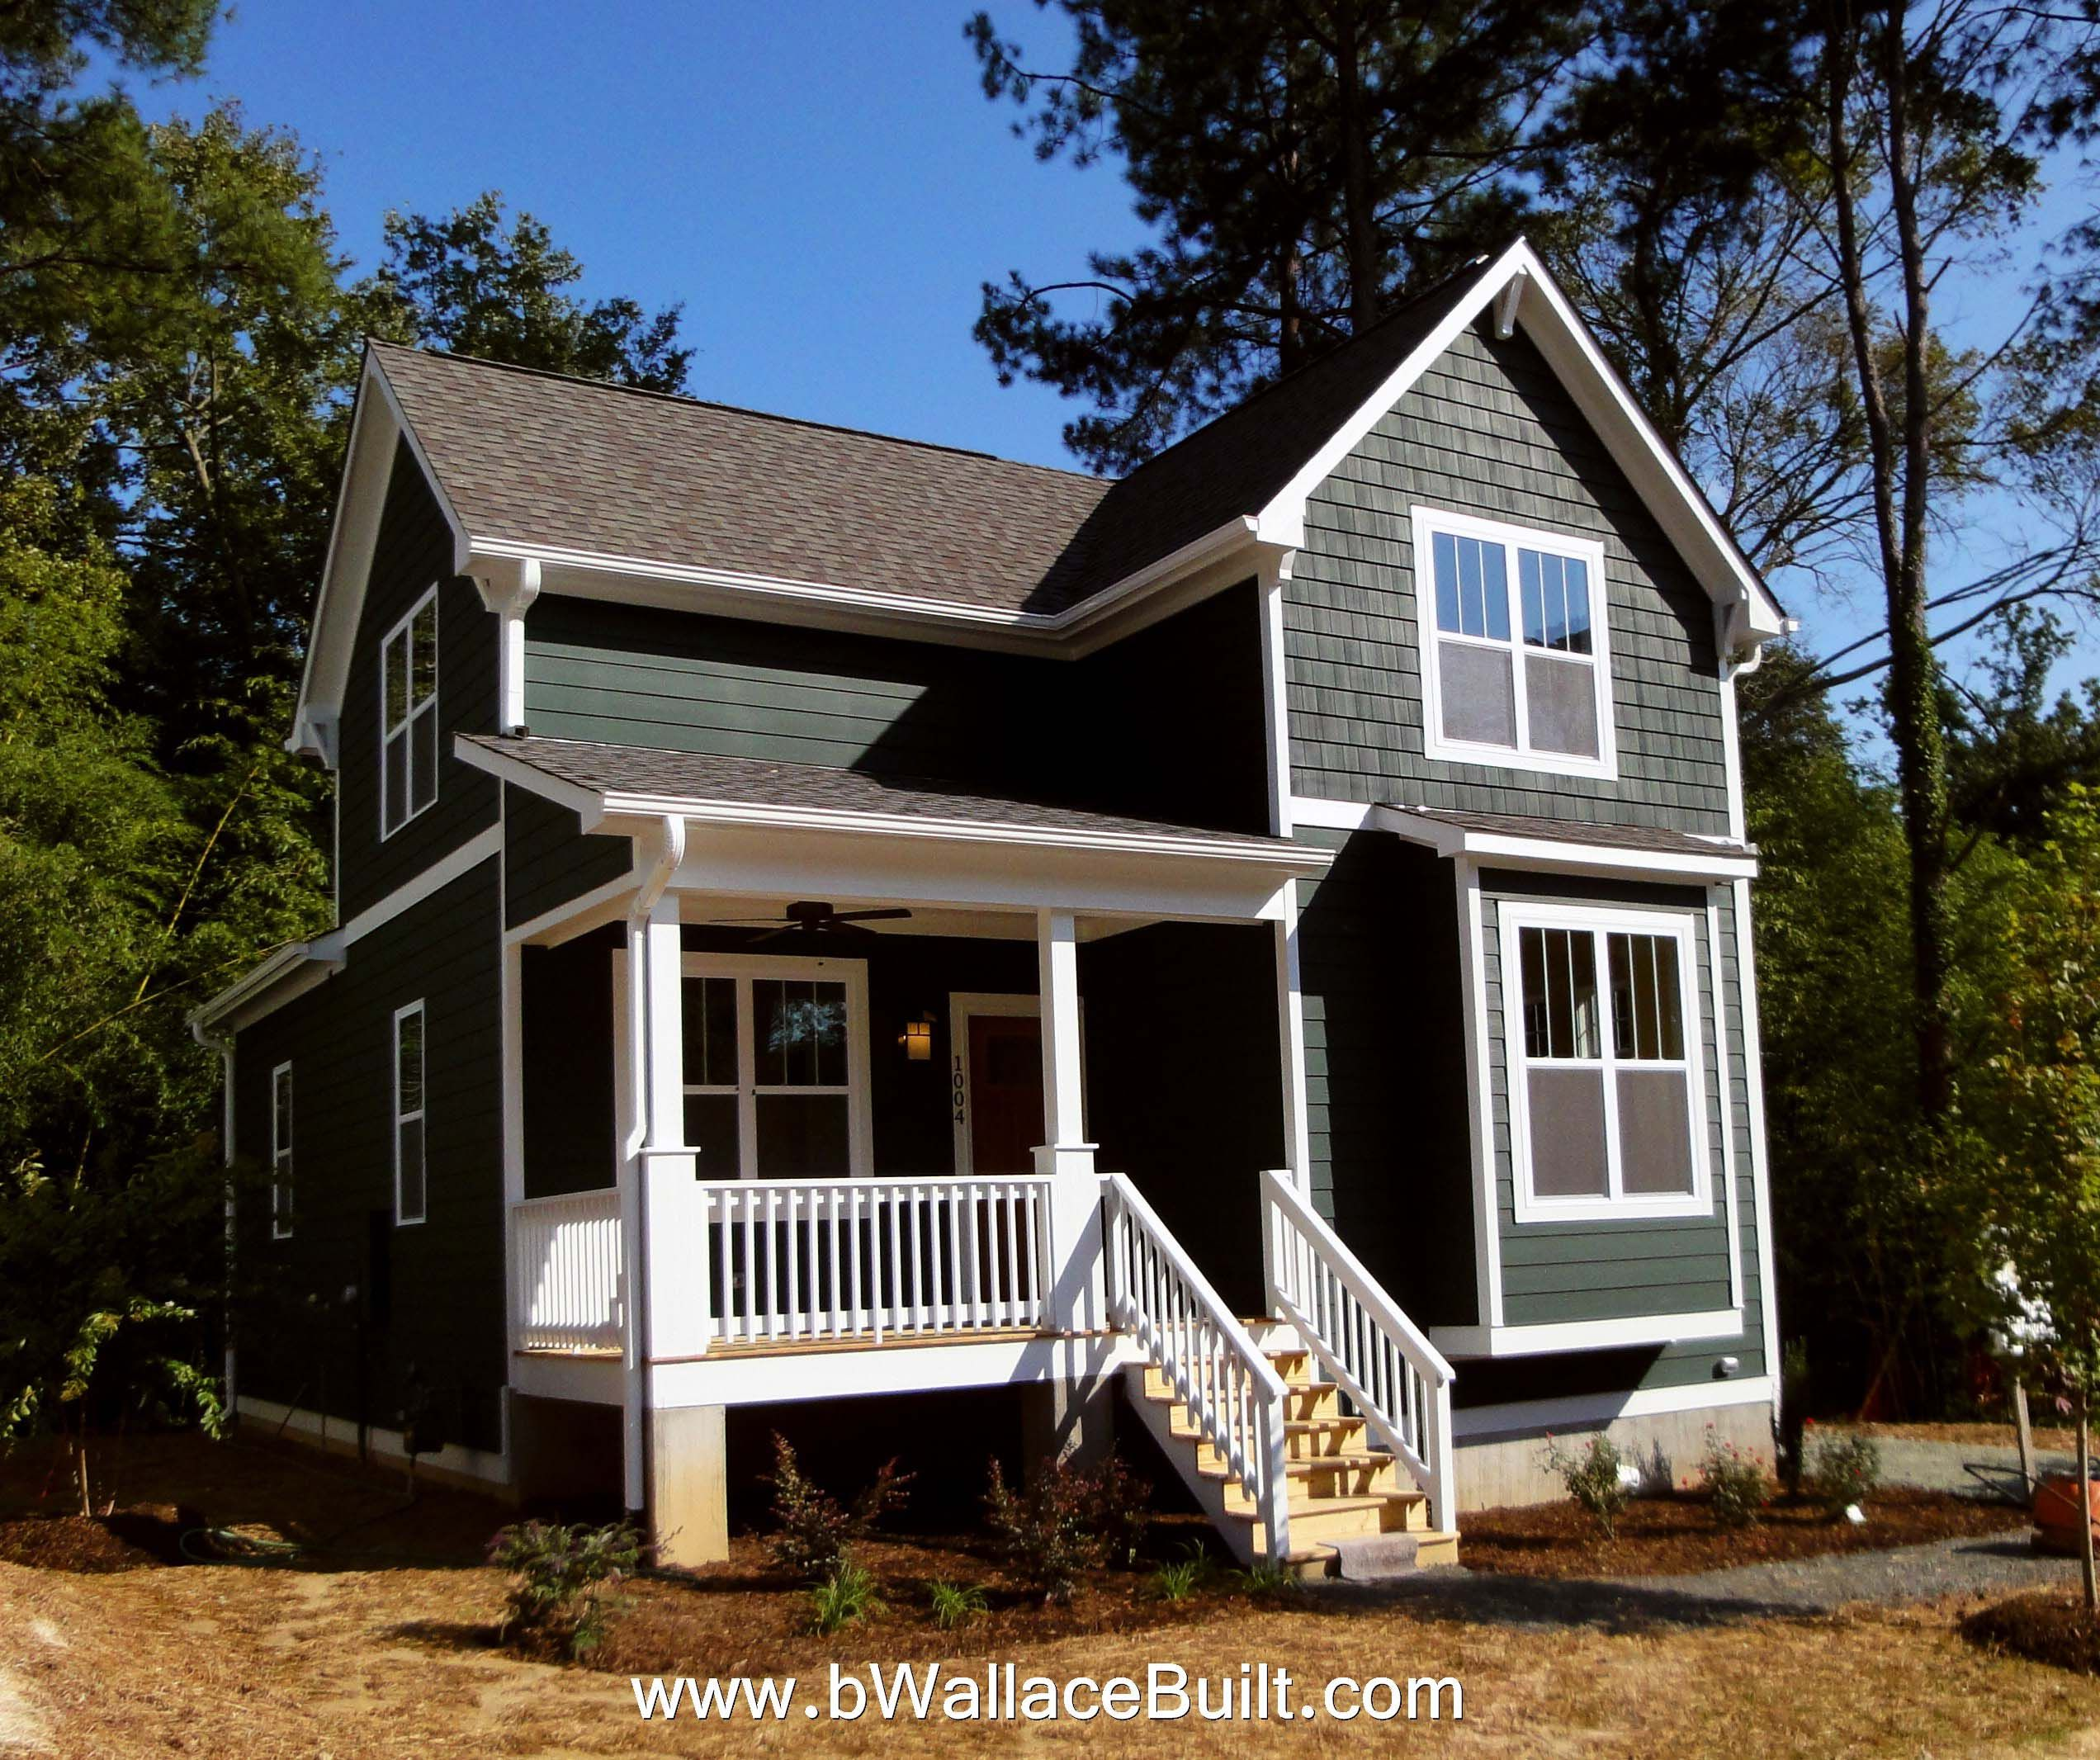 House Color Dark Charcoal Green Green Exterior House Colors House Paint Exterior Green House Paint